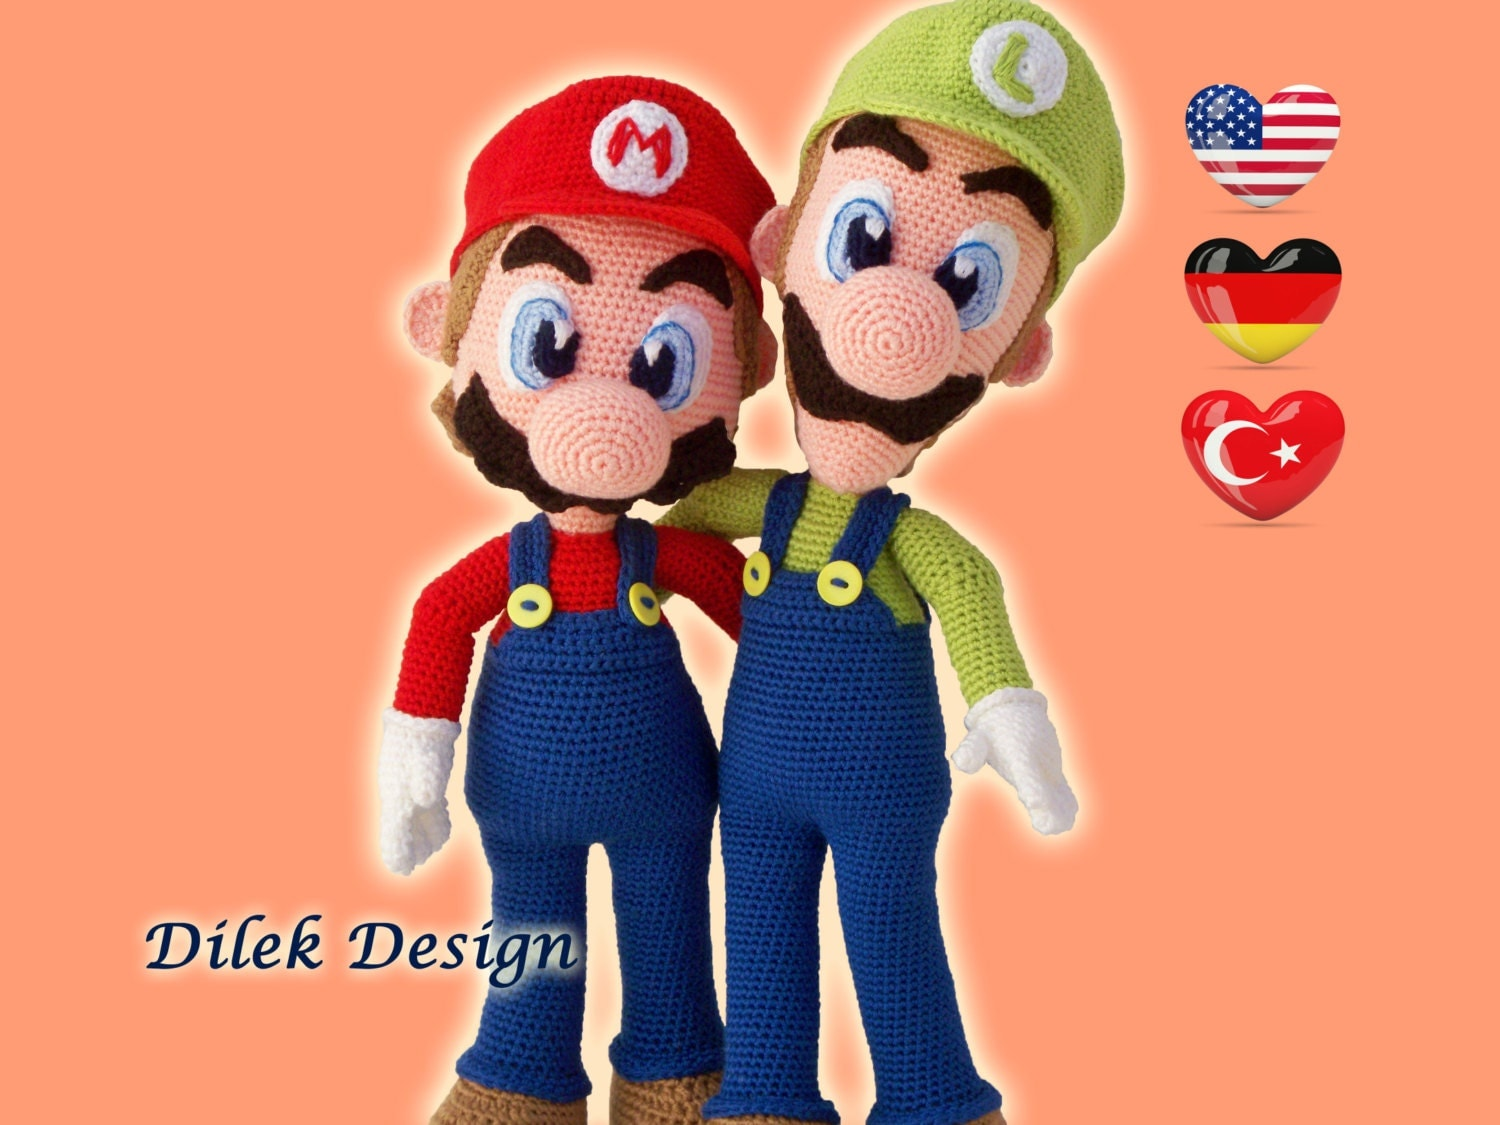 Behang Mario Bros ~ CROCHET PATTERN Mario& Luigi Amigurumi Pattern Super Mario Bros pattern Pattern Deal